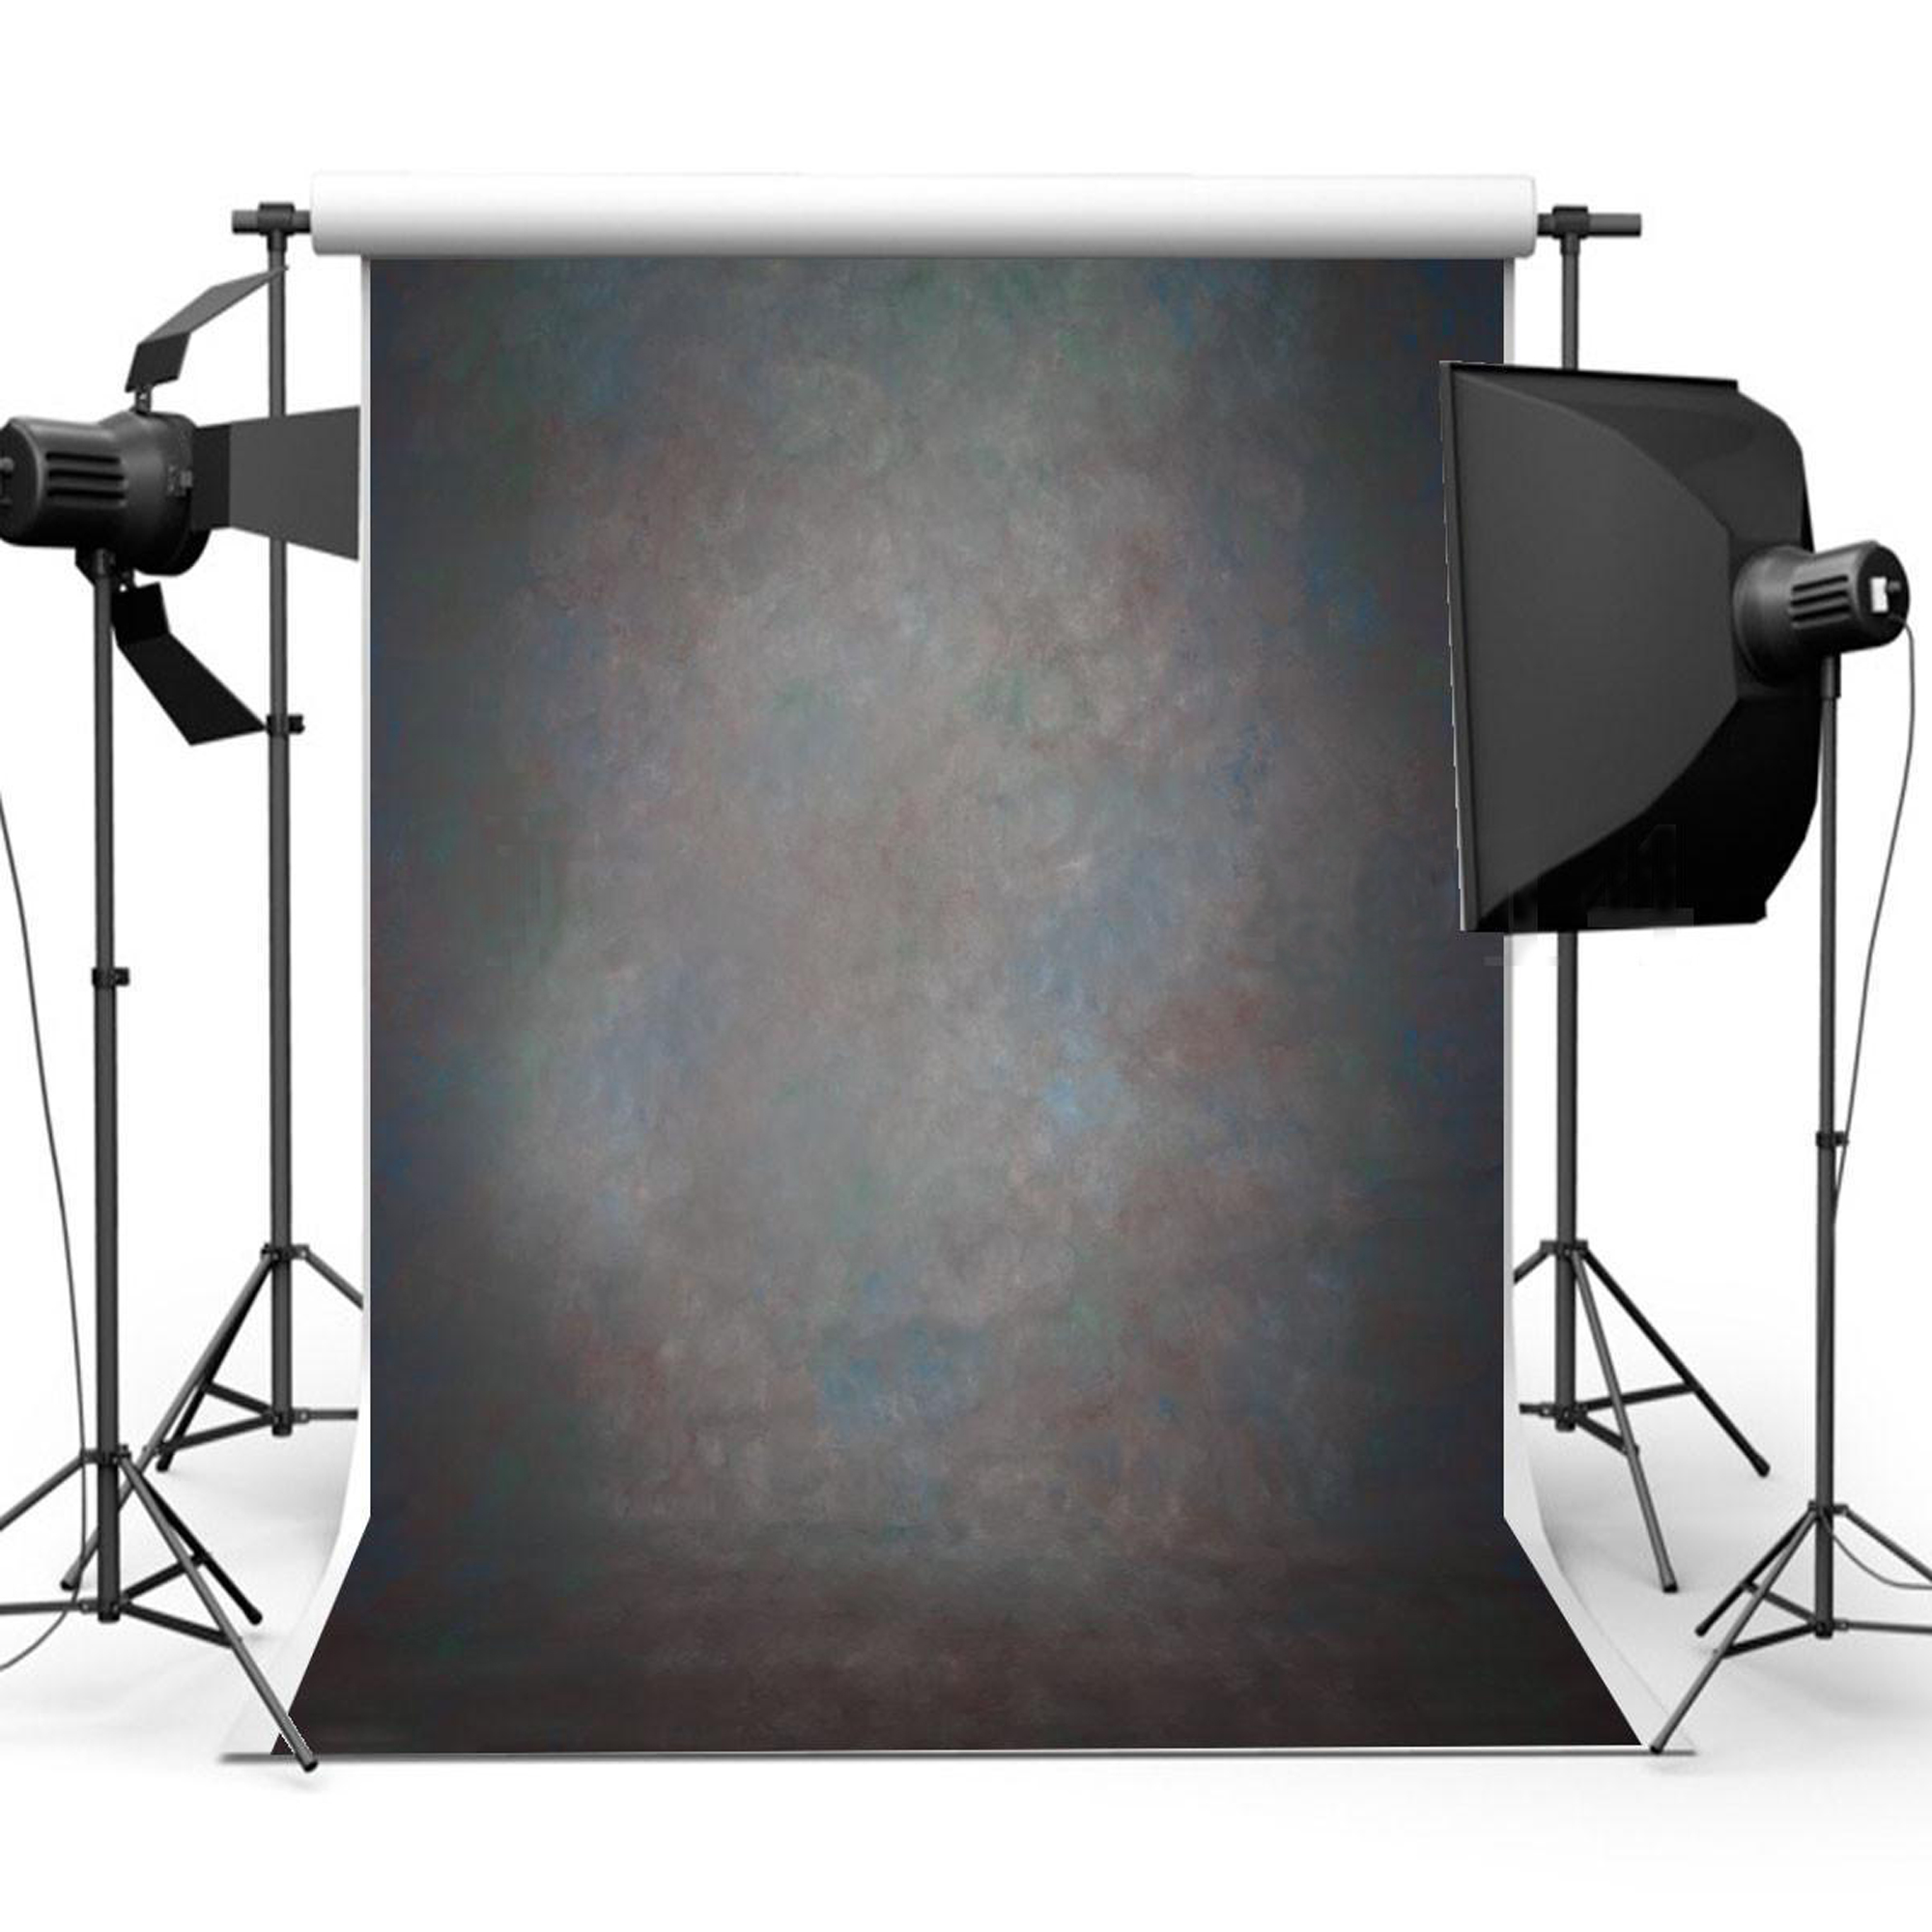 NK HOME Studio Photo Video Photography Backdrops 5x7ft Abstract Painting Printed Vinyl Fabric Background Screen Props